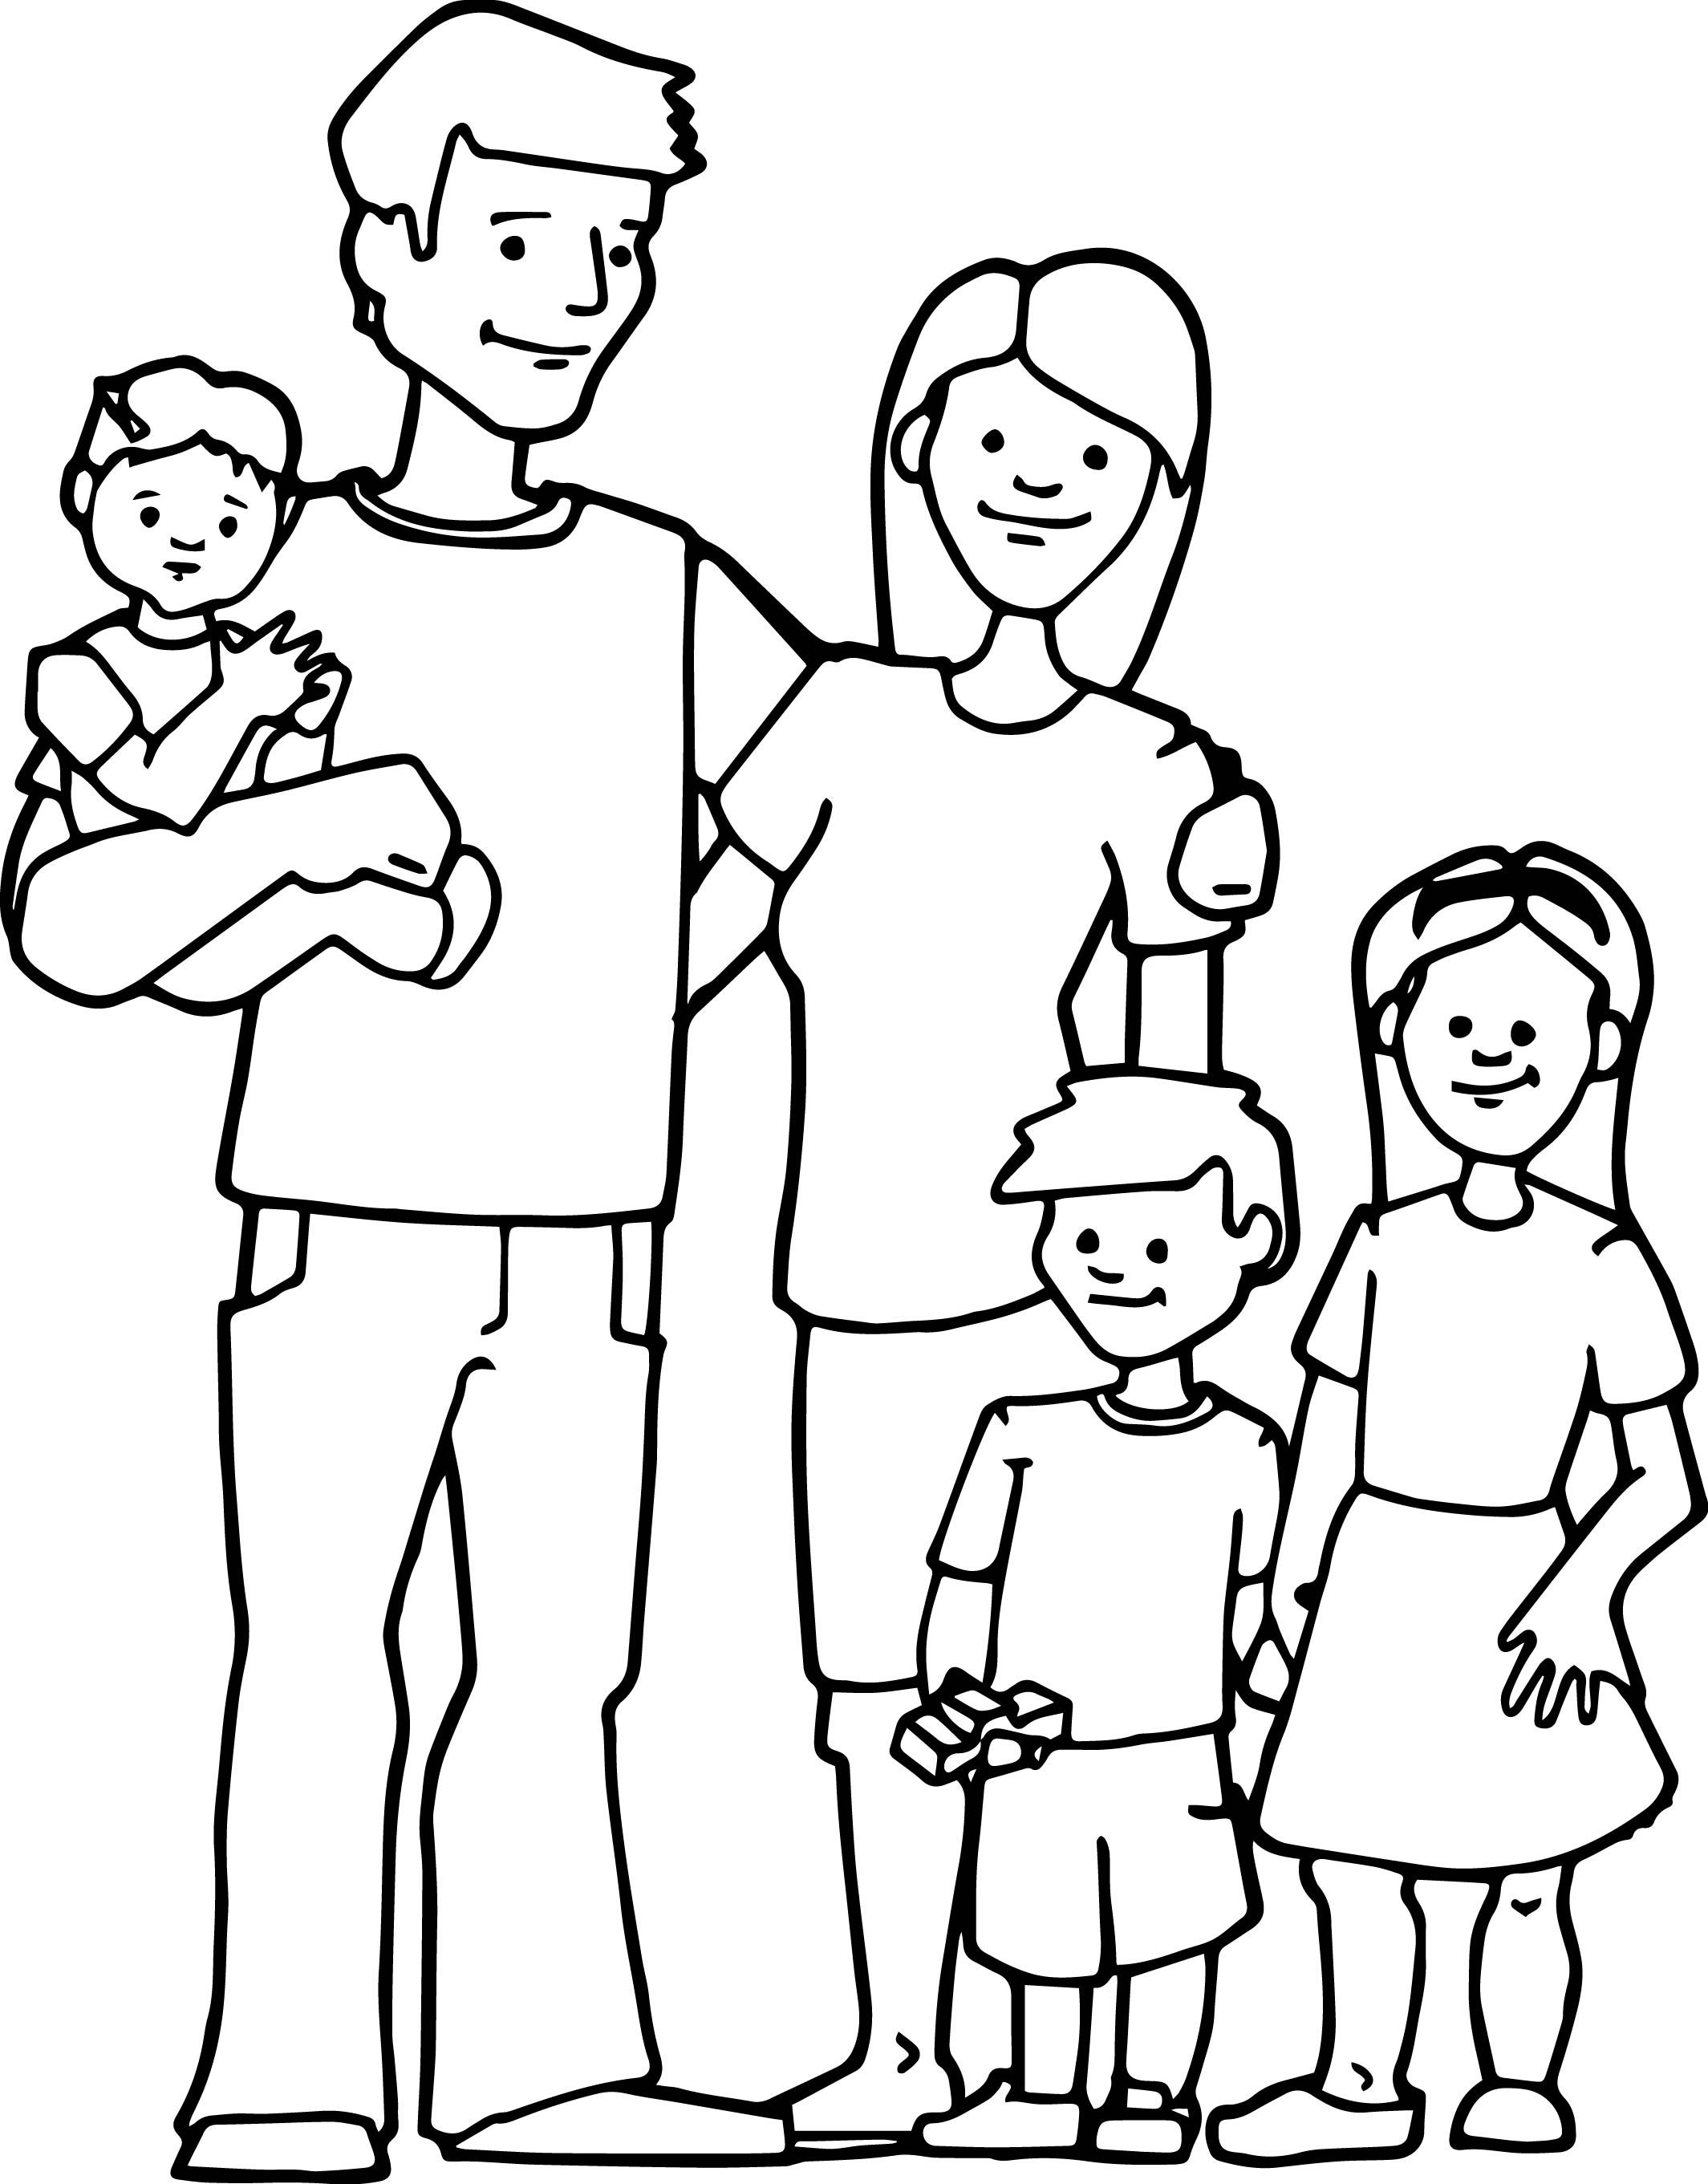 Family Kids Coloring Page Jpg 2129 2722 Preschool Plans Family Coloring Page